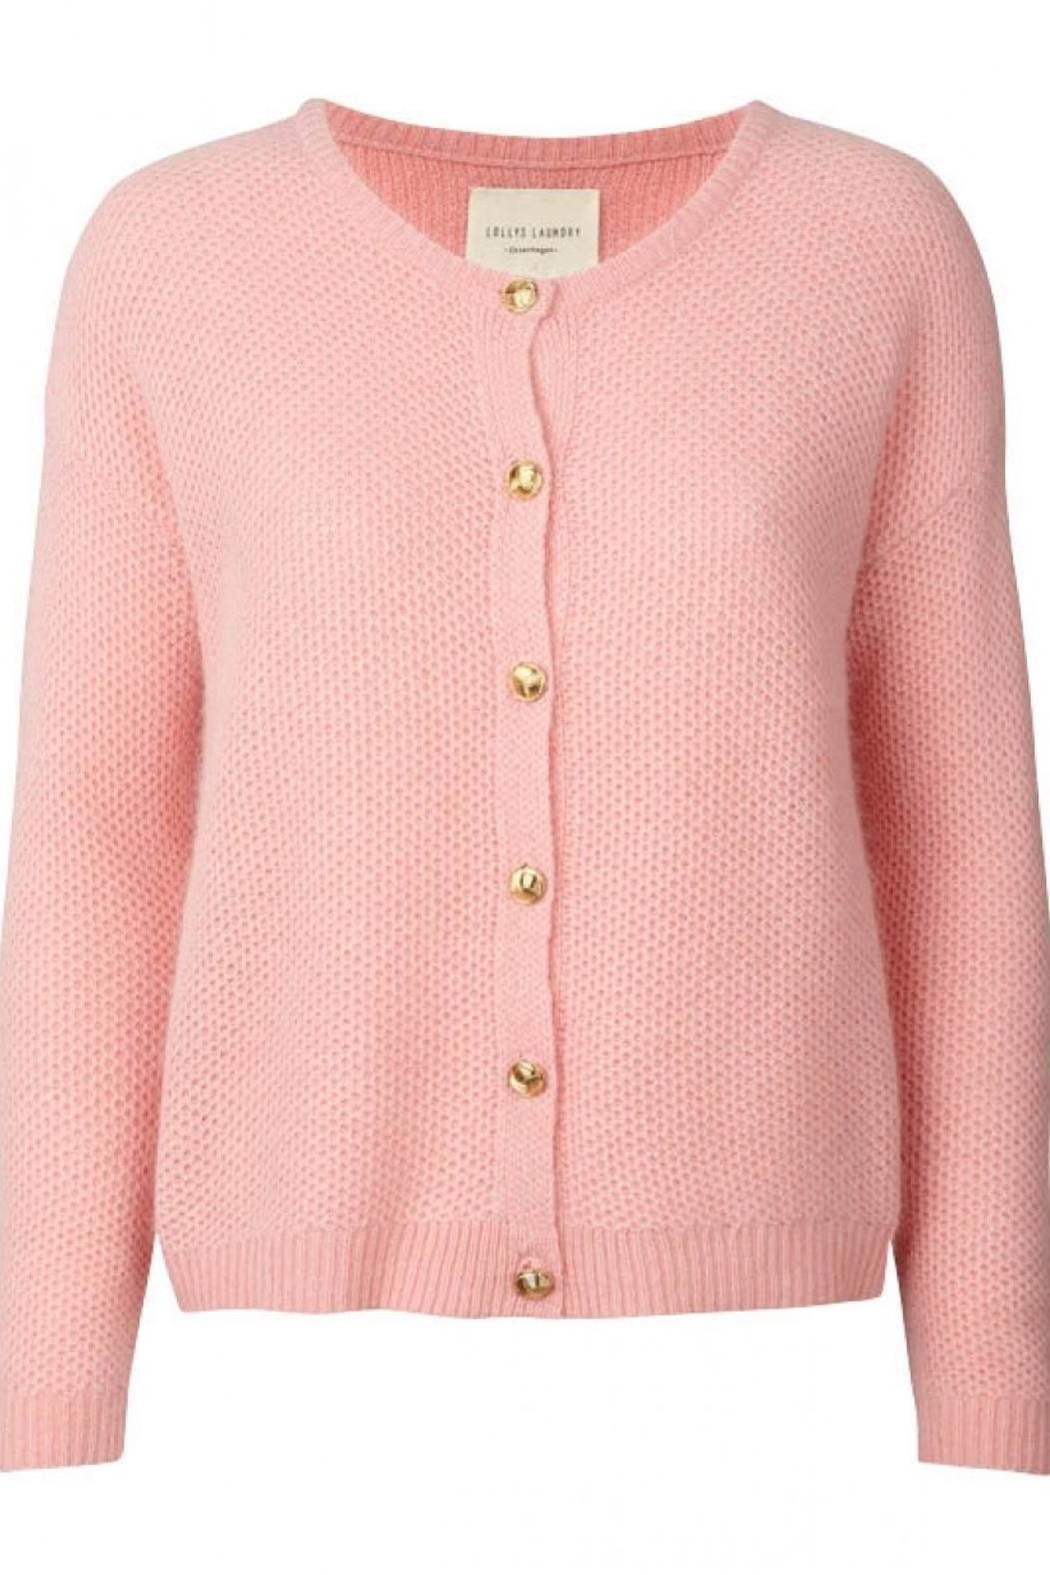 LOLLYS LAUNDRY Soft Pink Cardigan - Front Full Image